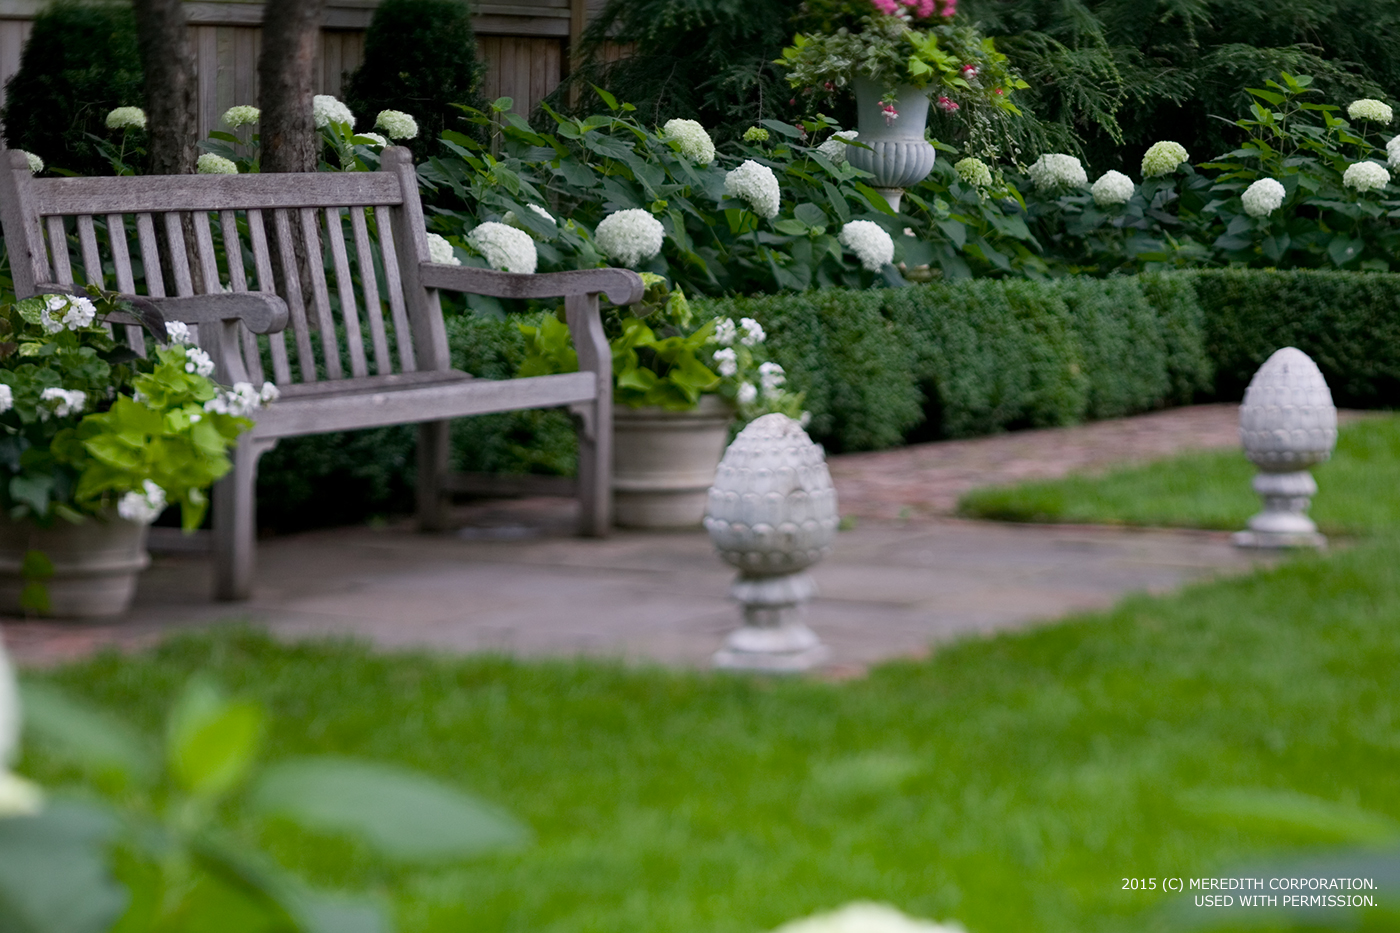 Tips for Creating a Clean, Formal Landscape - bhgrelife.com